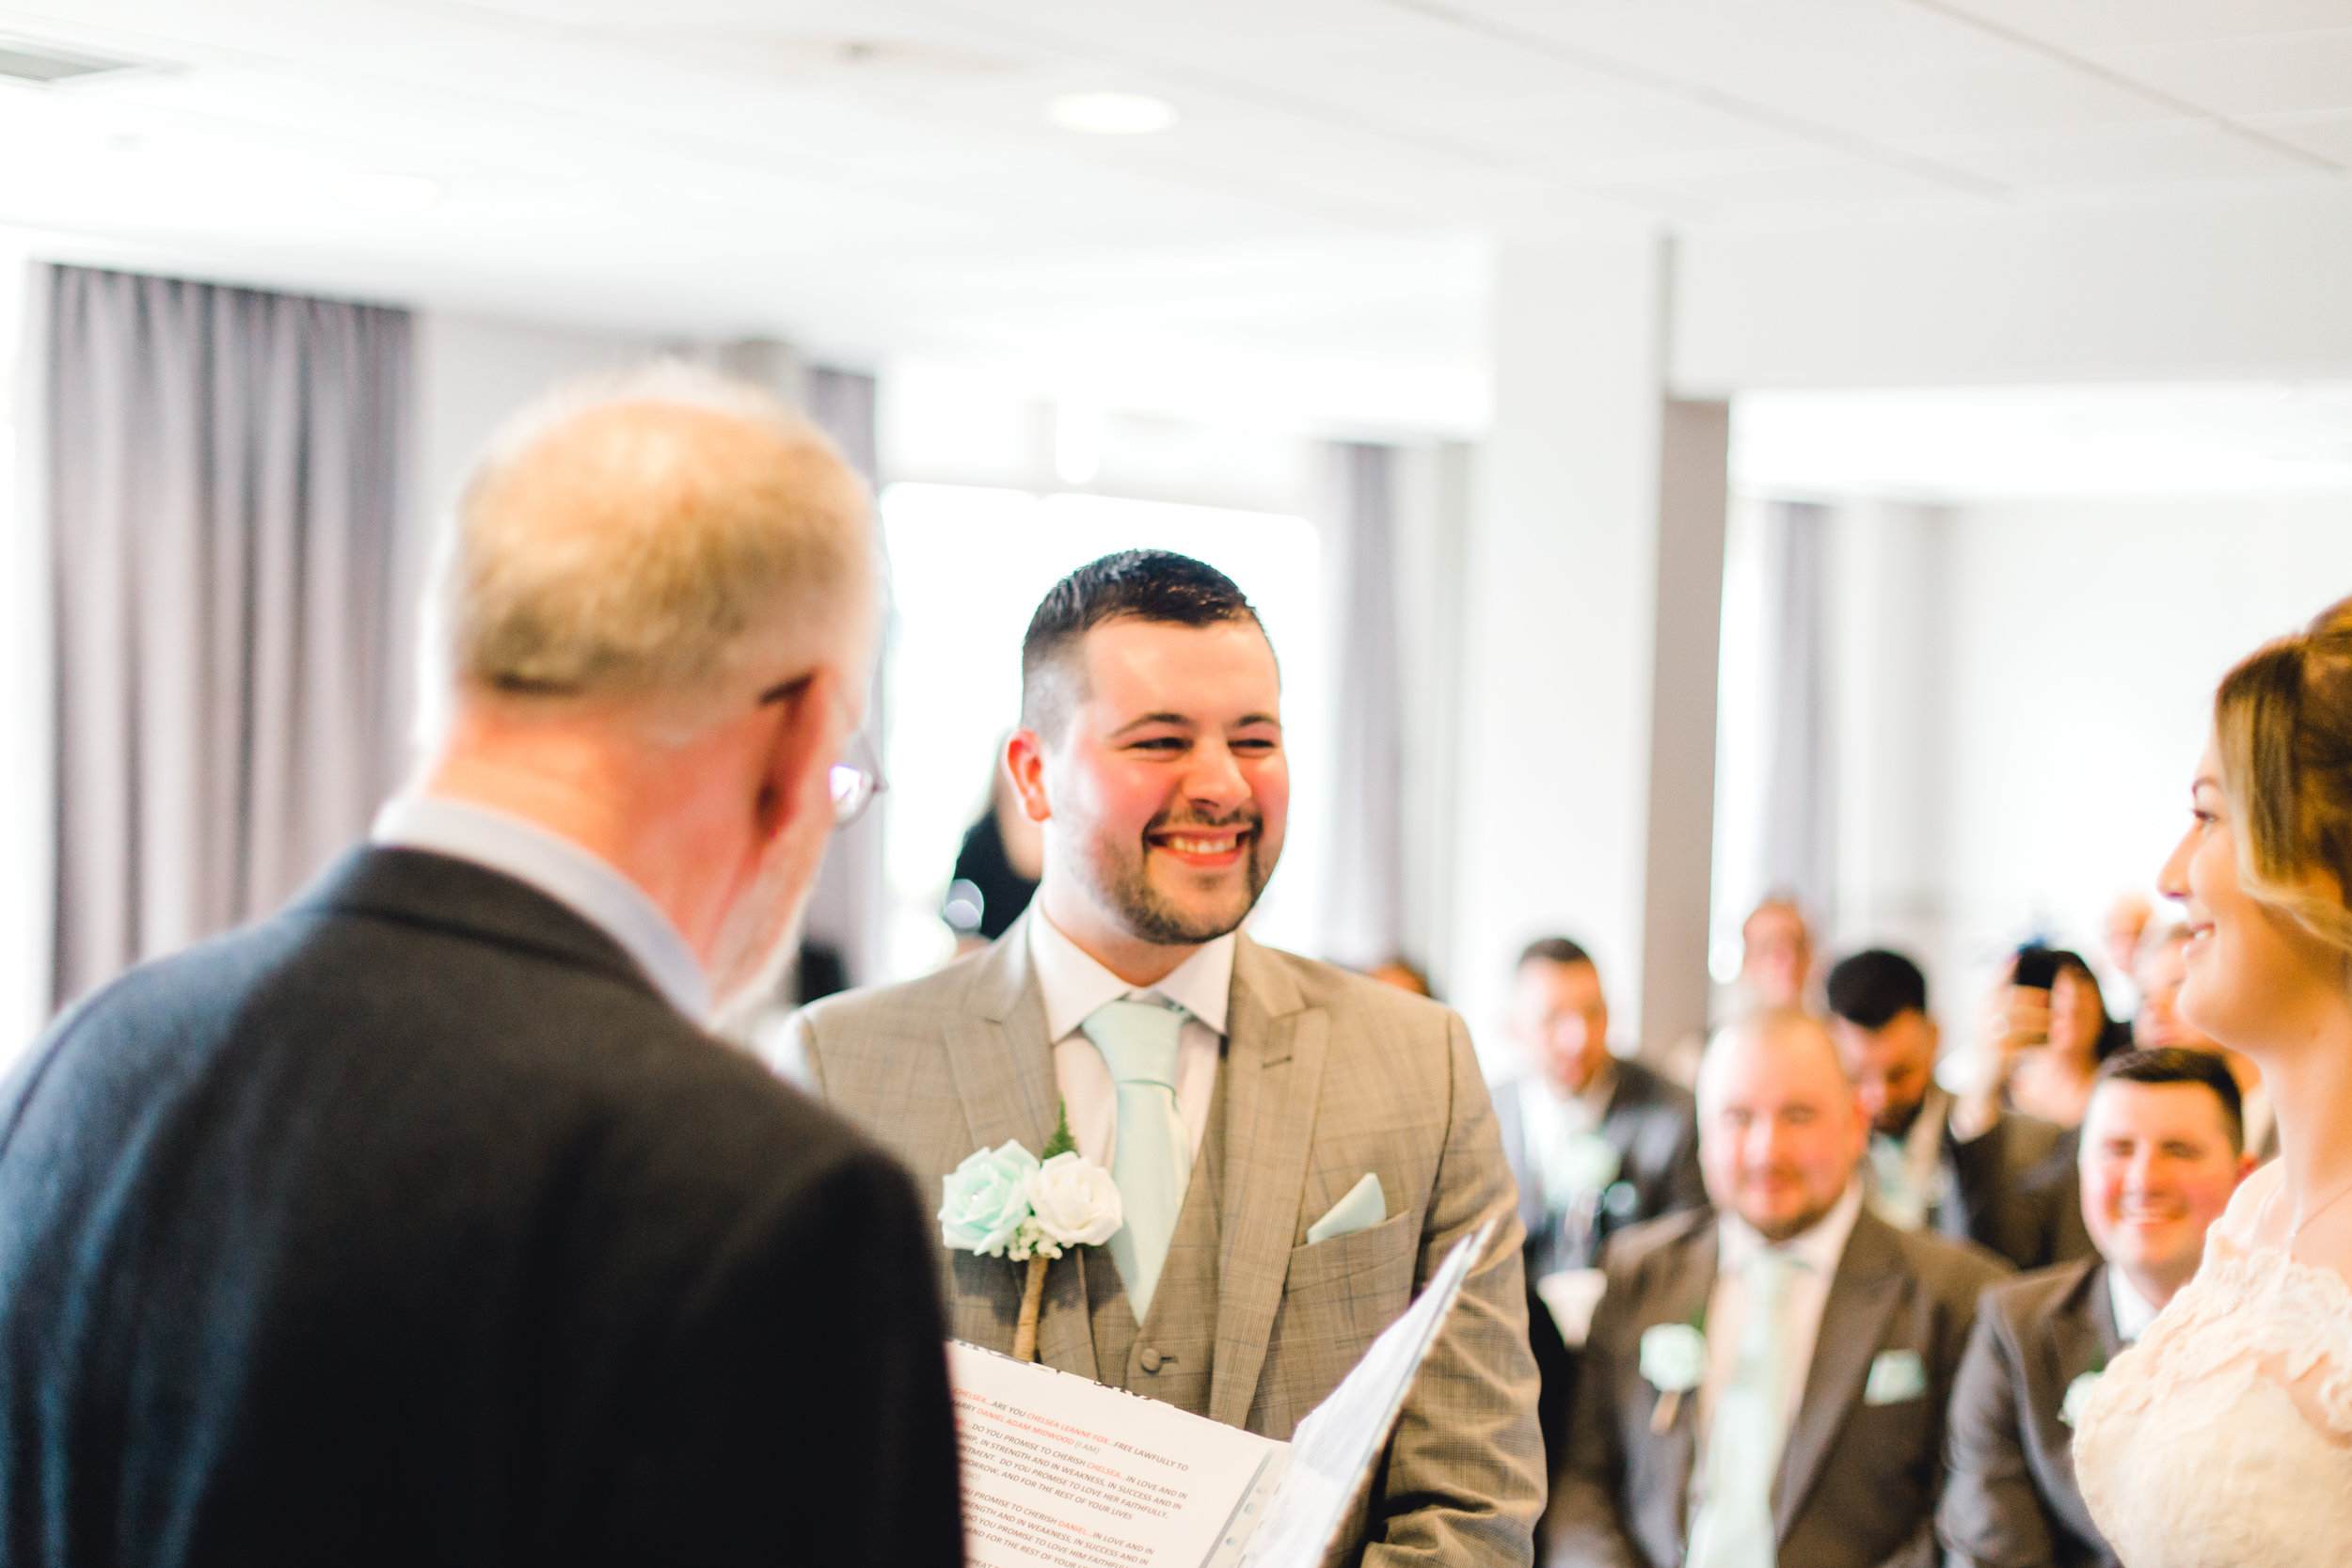 Funny groom slips up during the wedding vows